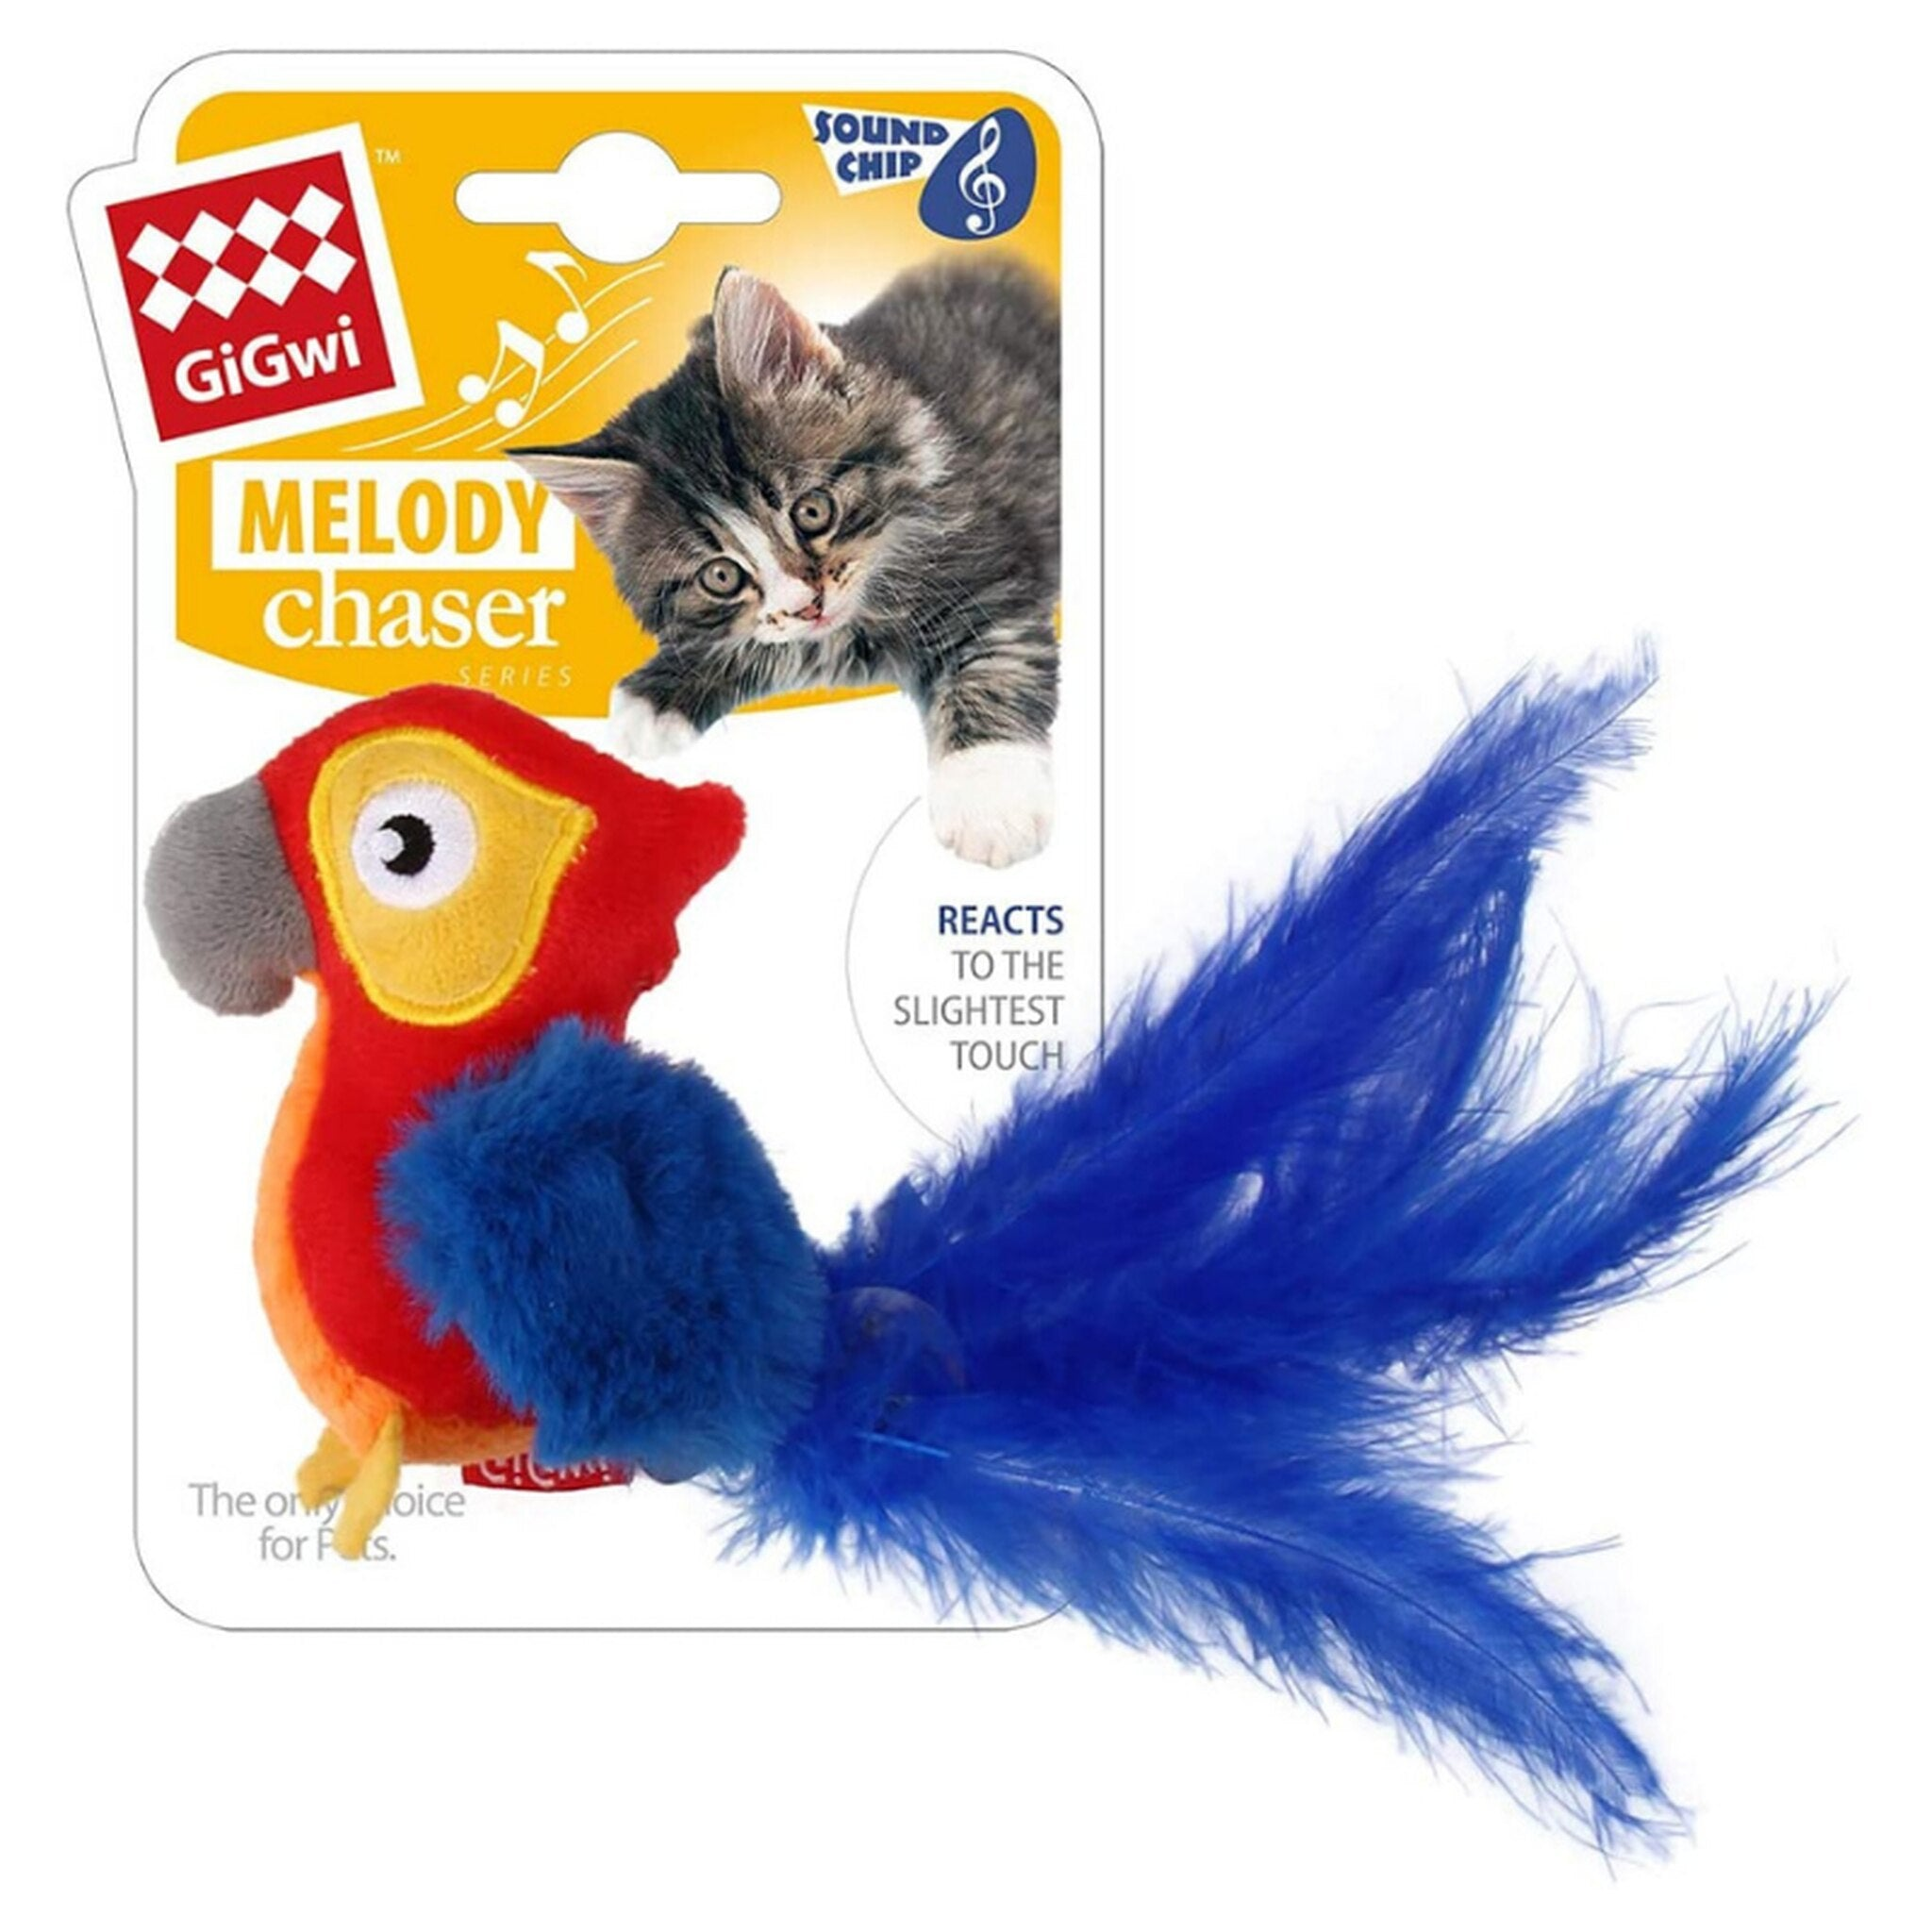 Gigwi Melody Chaser Parrot Motion Active Cat Toy